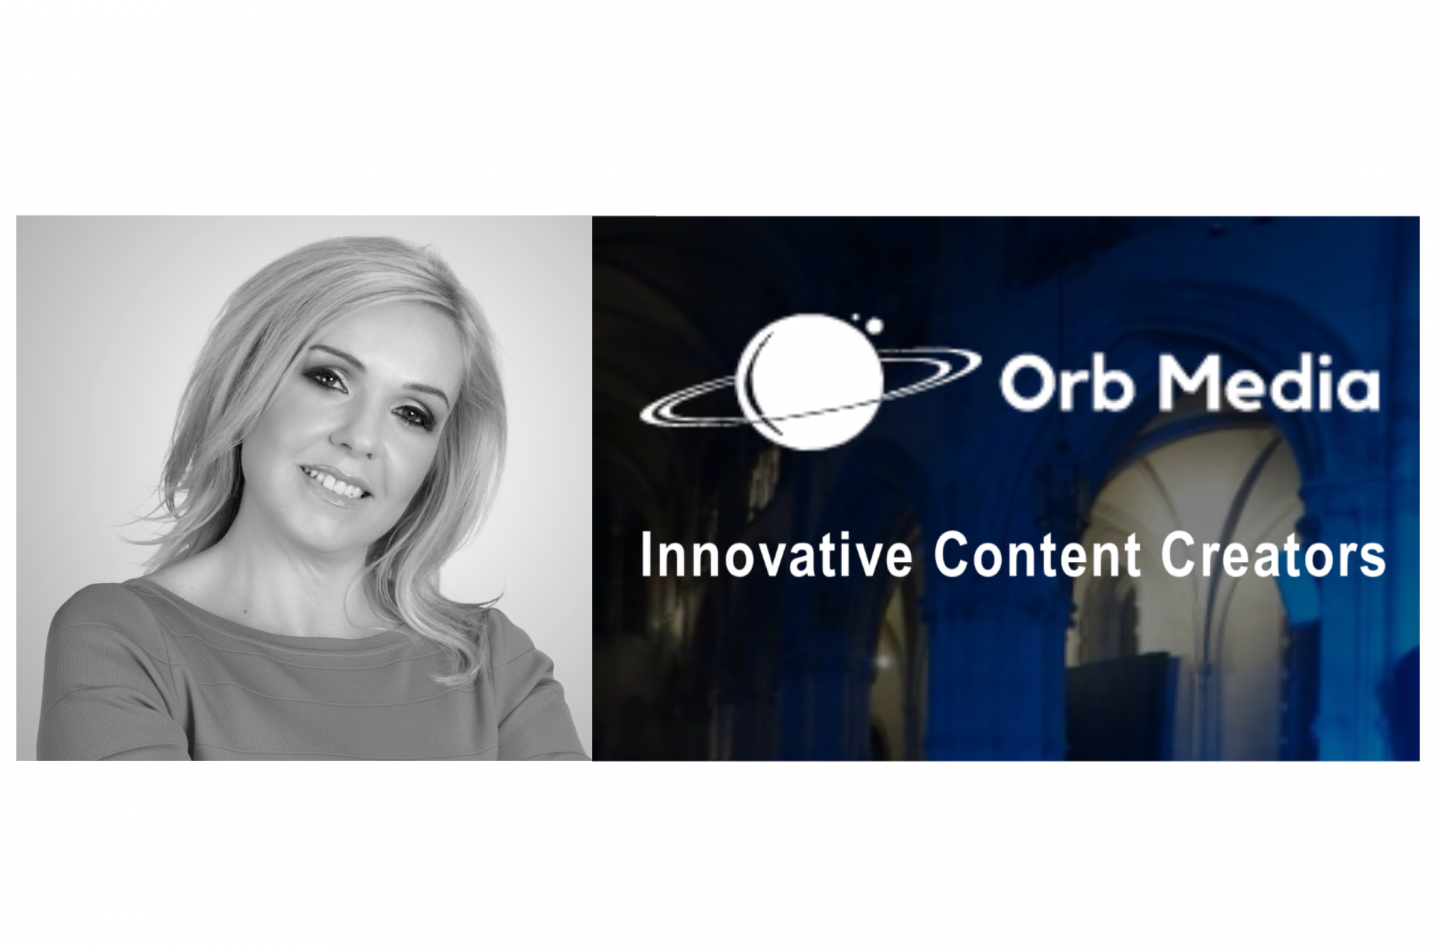 Ciara Sheahan CEO & Co-Founder of Orb Media